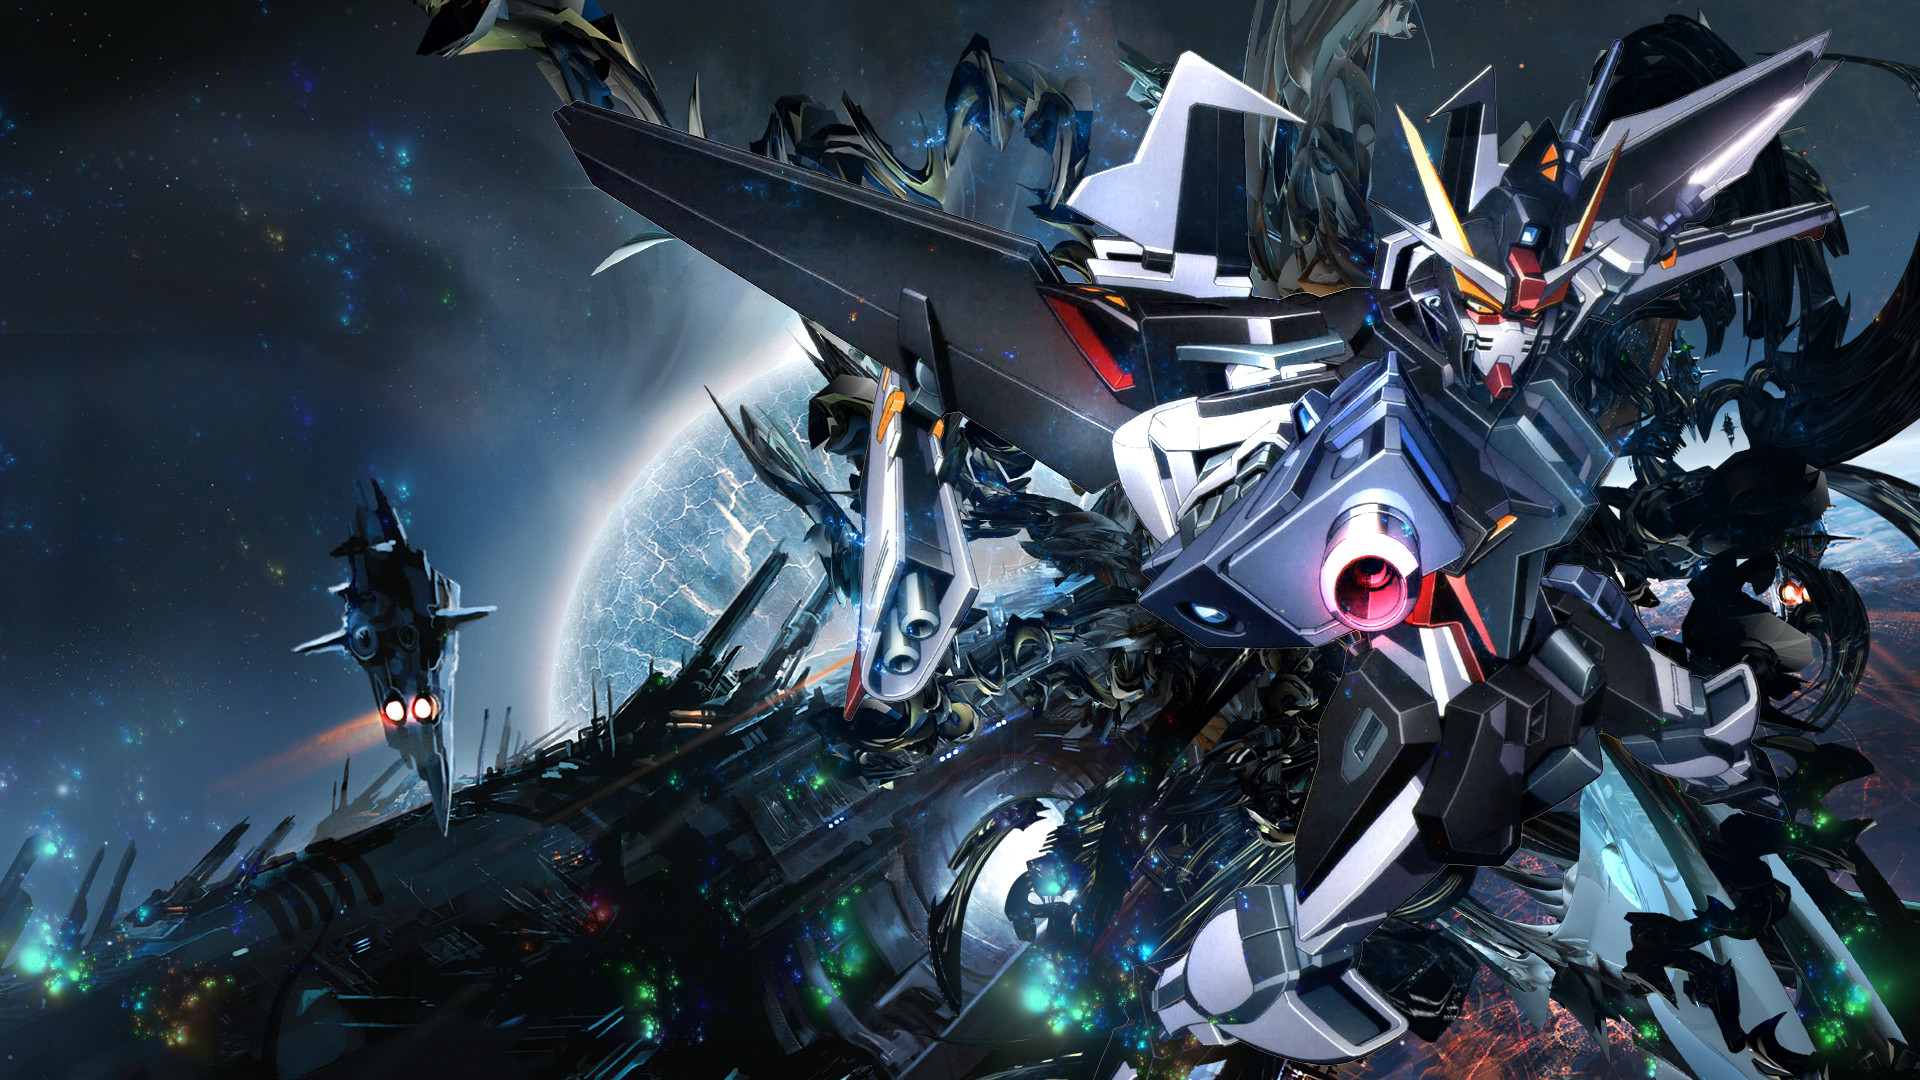 Fantasy Wallpaper 1920x1080 >> Gundam Wing Deathscythe Wallpaper (74+ images)